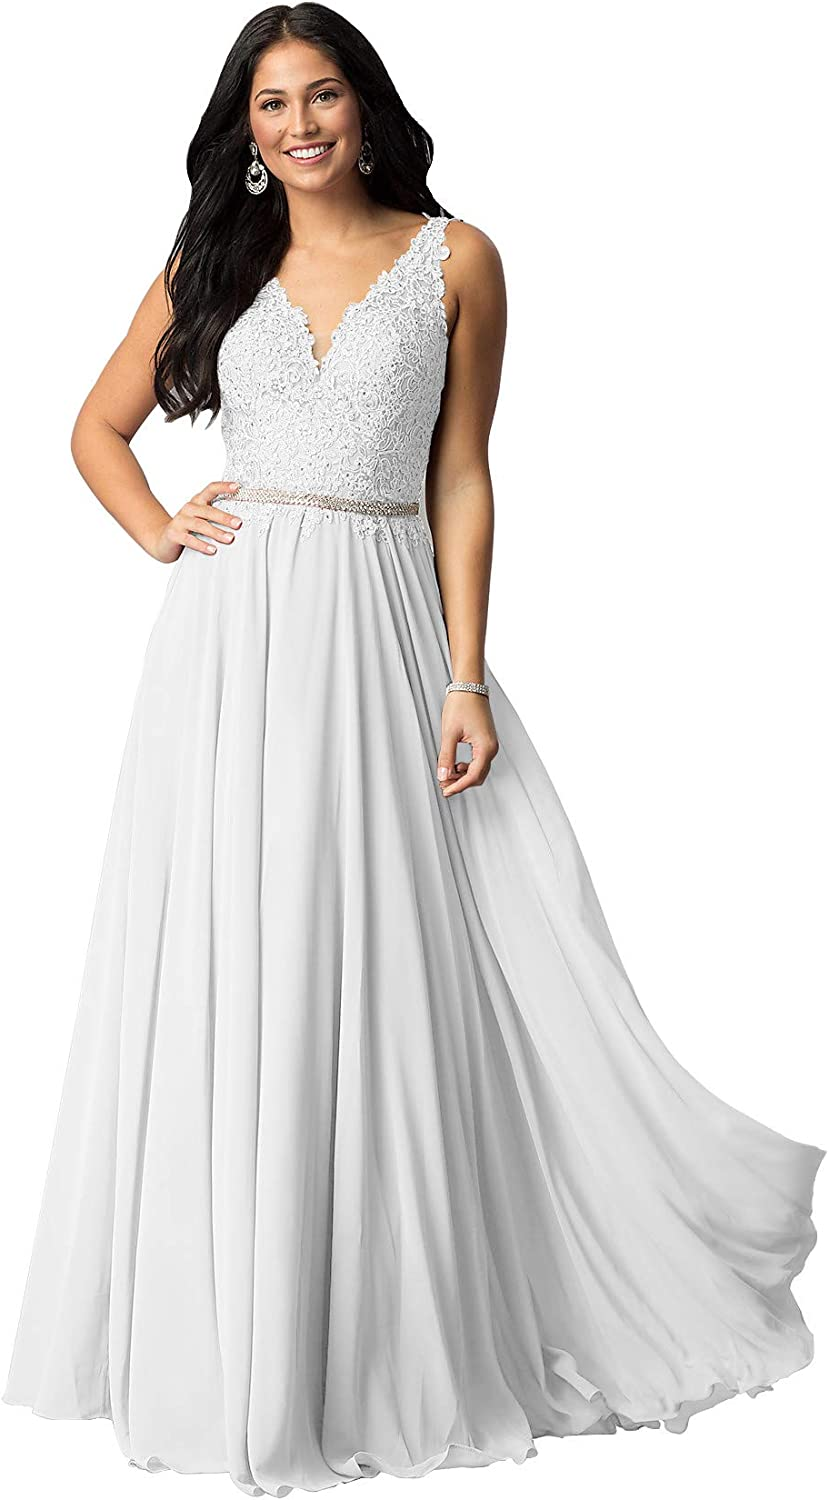 Women's V Neck Lace Bodice Formal Branded Columbus Mall goods Long Chiffon Prom Evening Gown